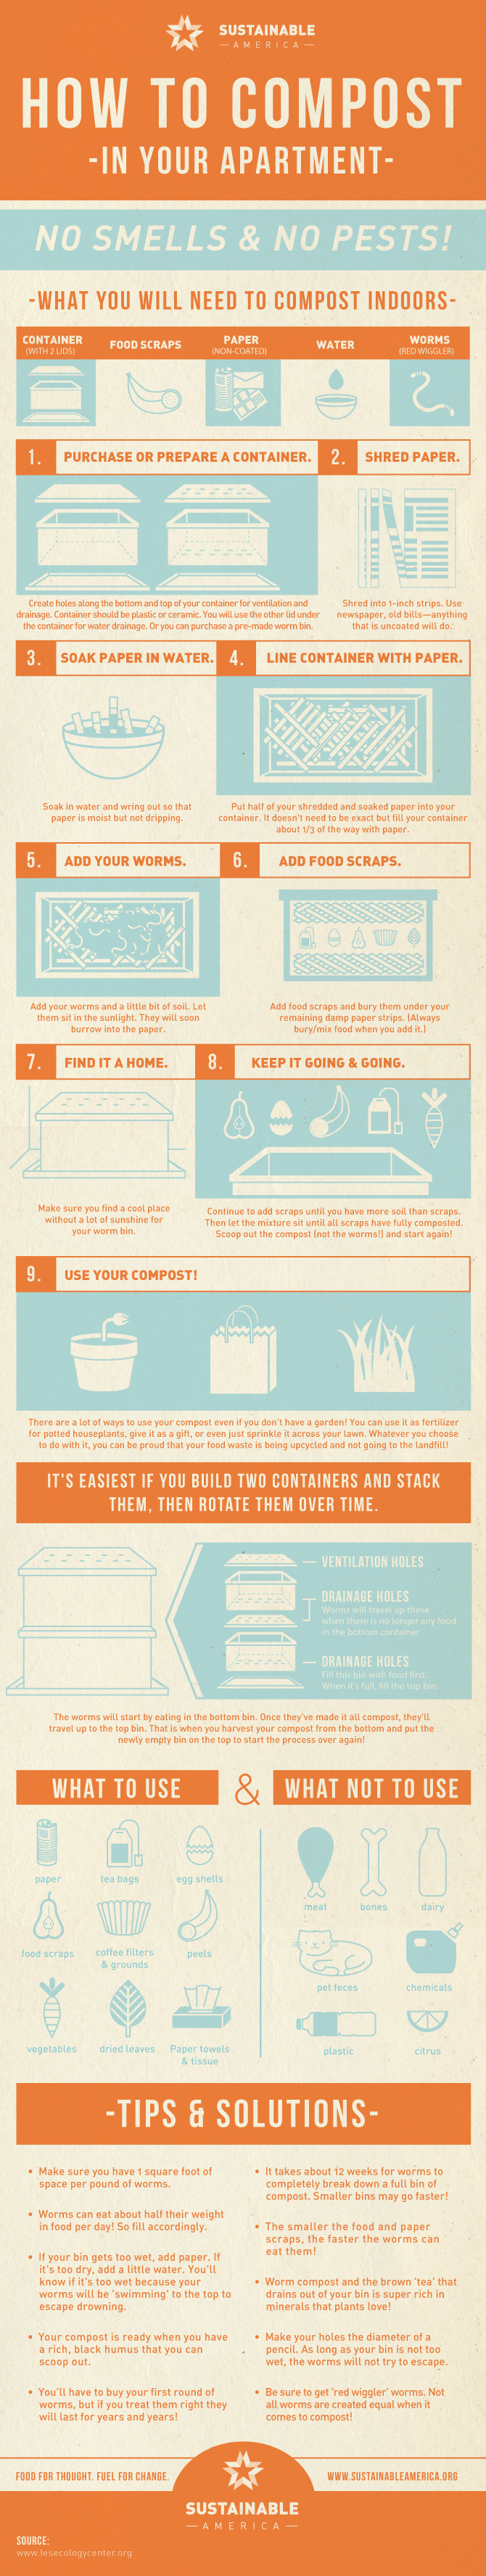 Infographic: How to Compost in Your Apartment